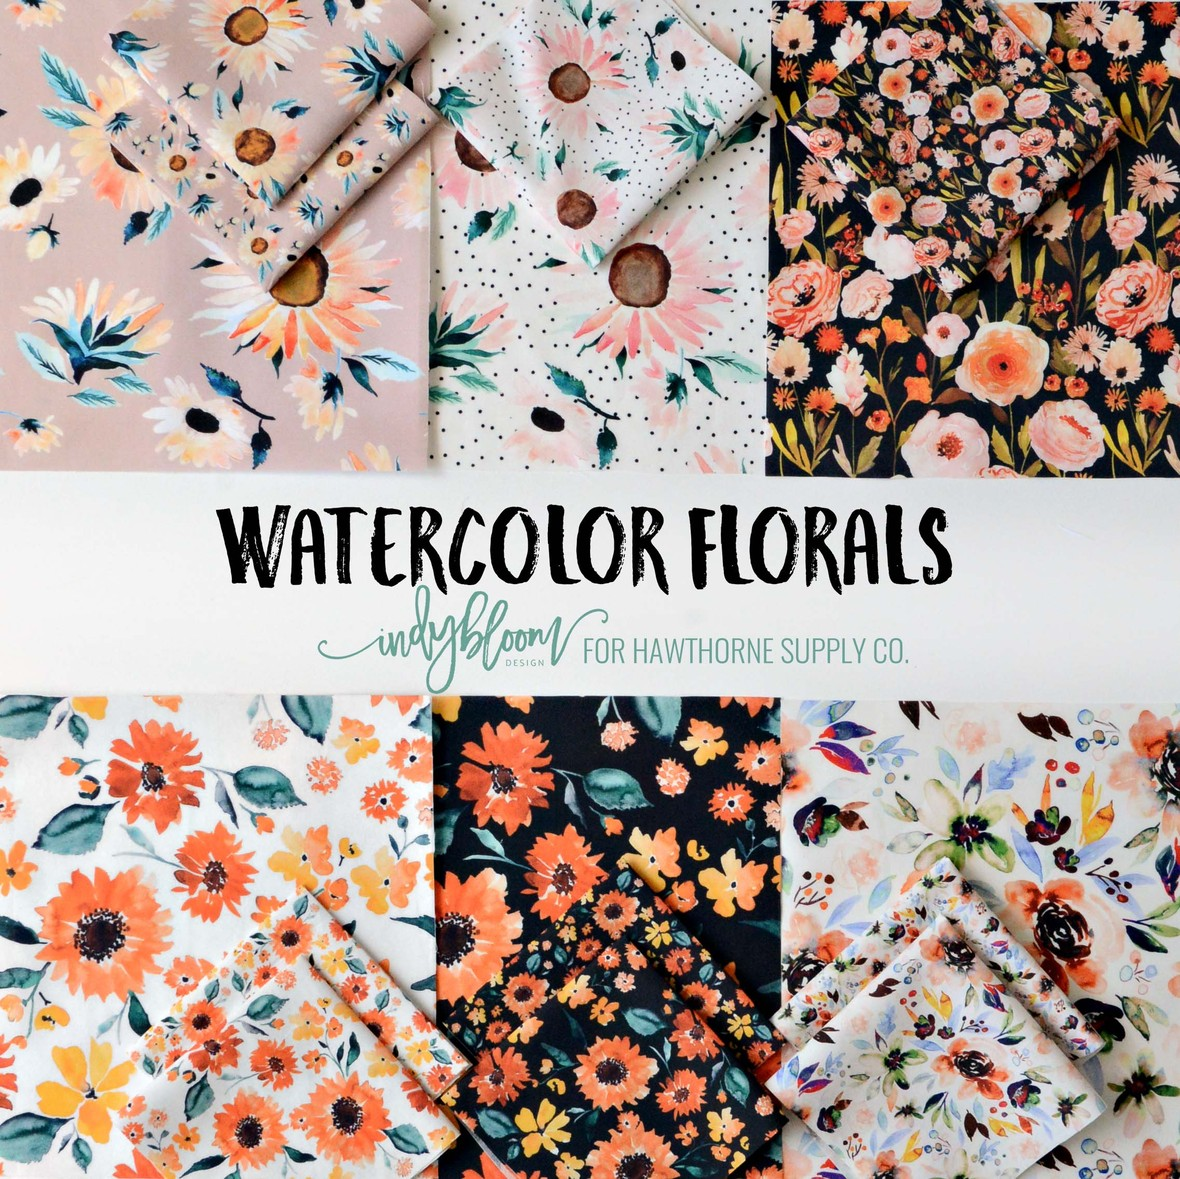 Indy Bloom for Hawthorne Supply Co Watercolor Florals August 2018